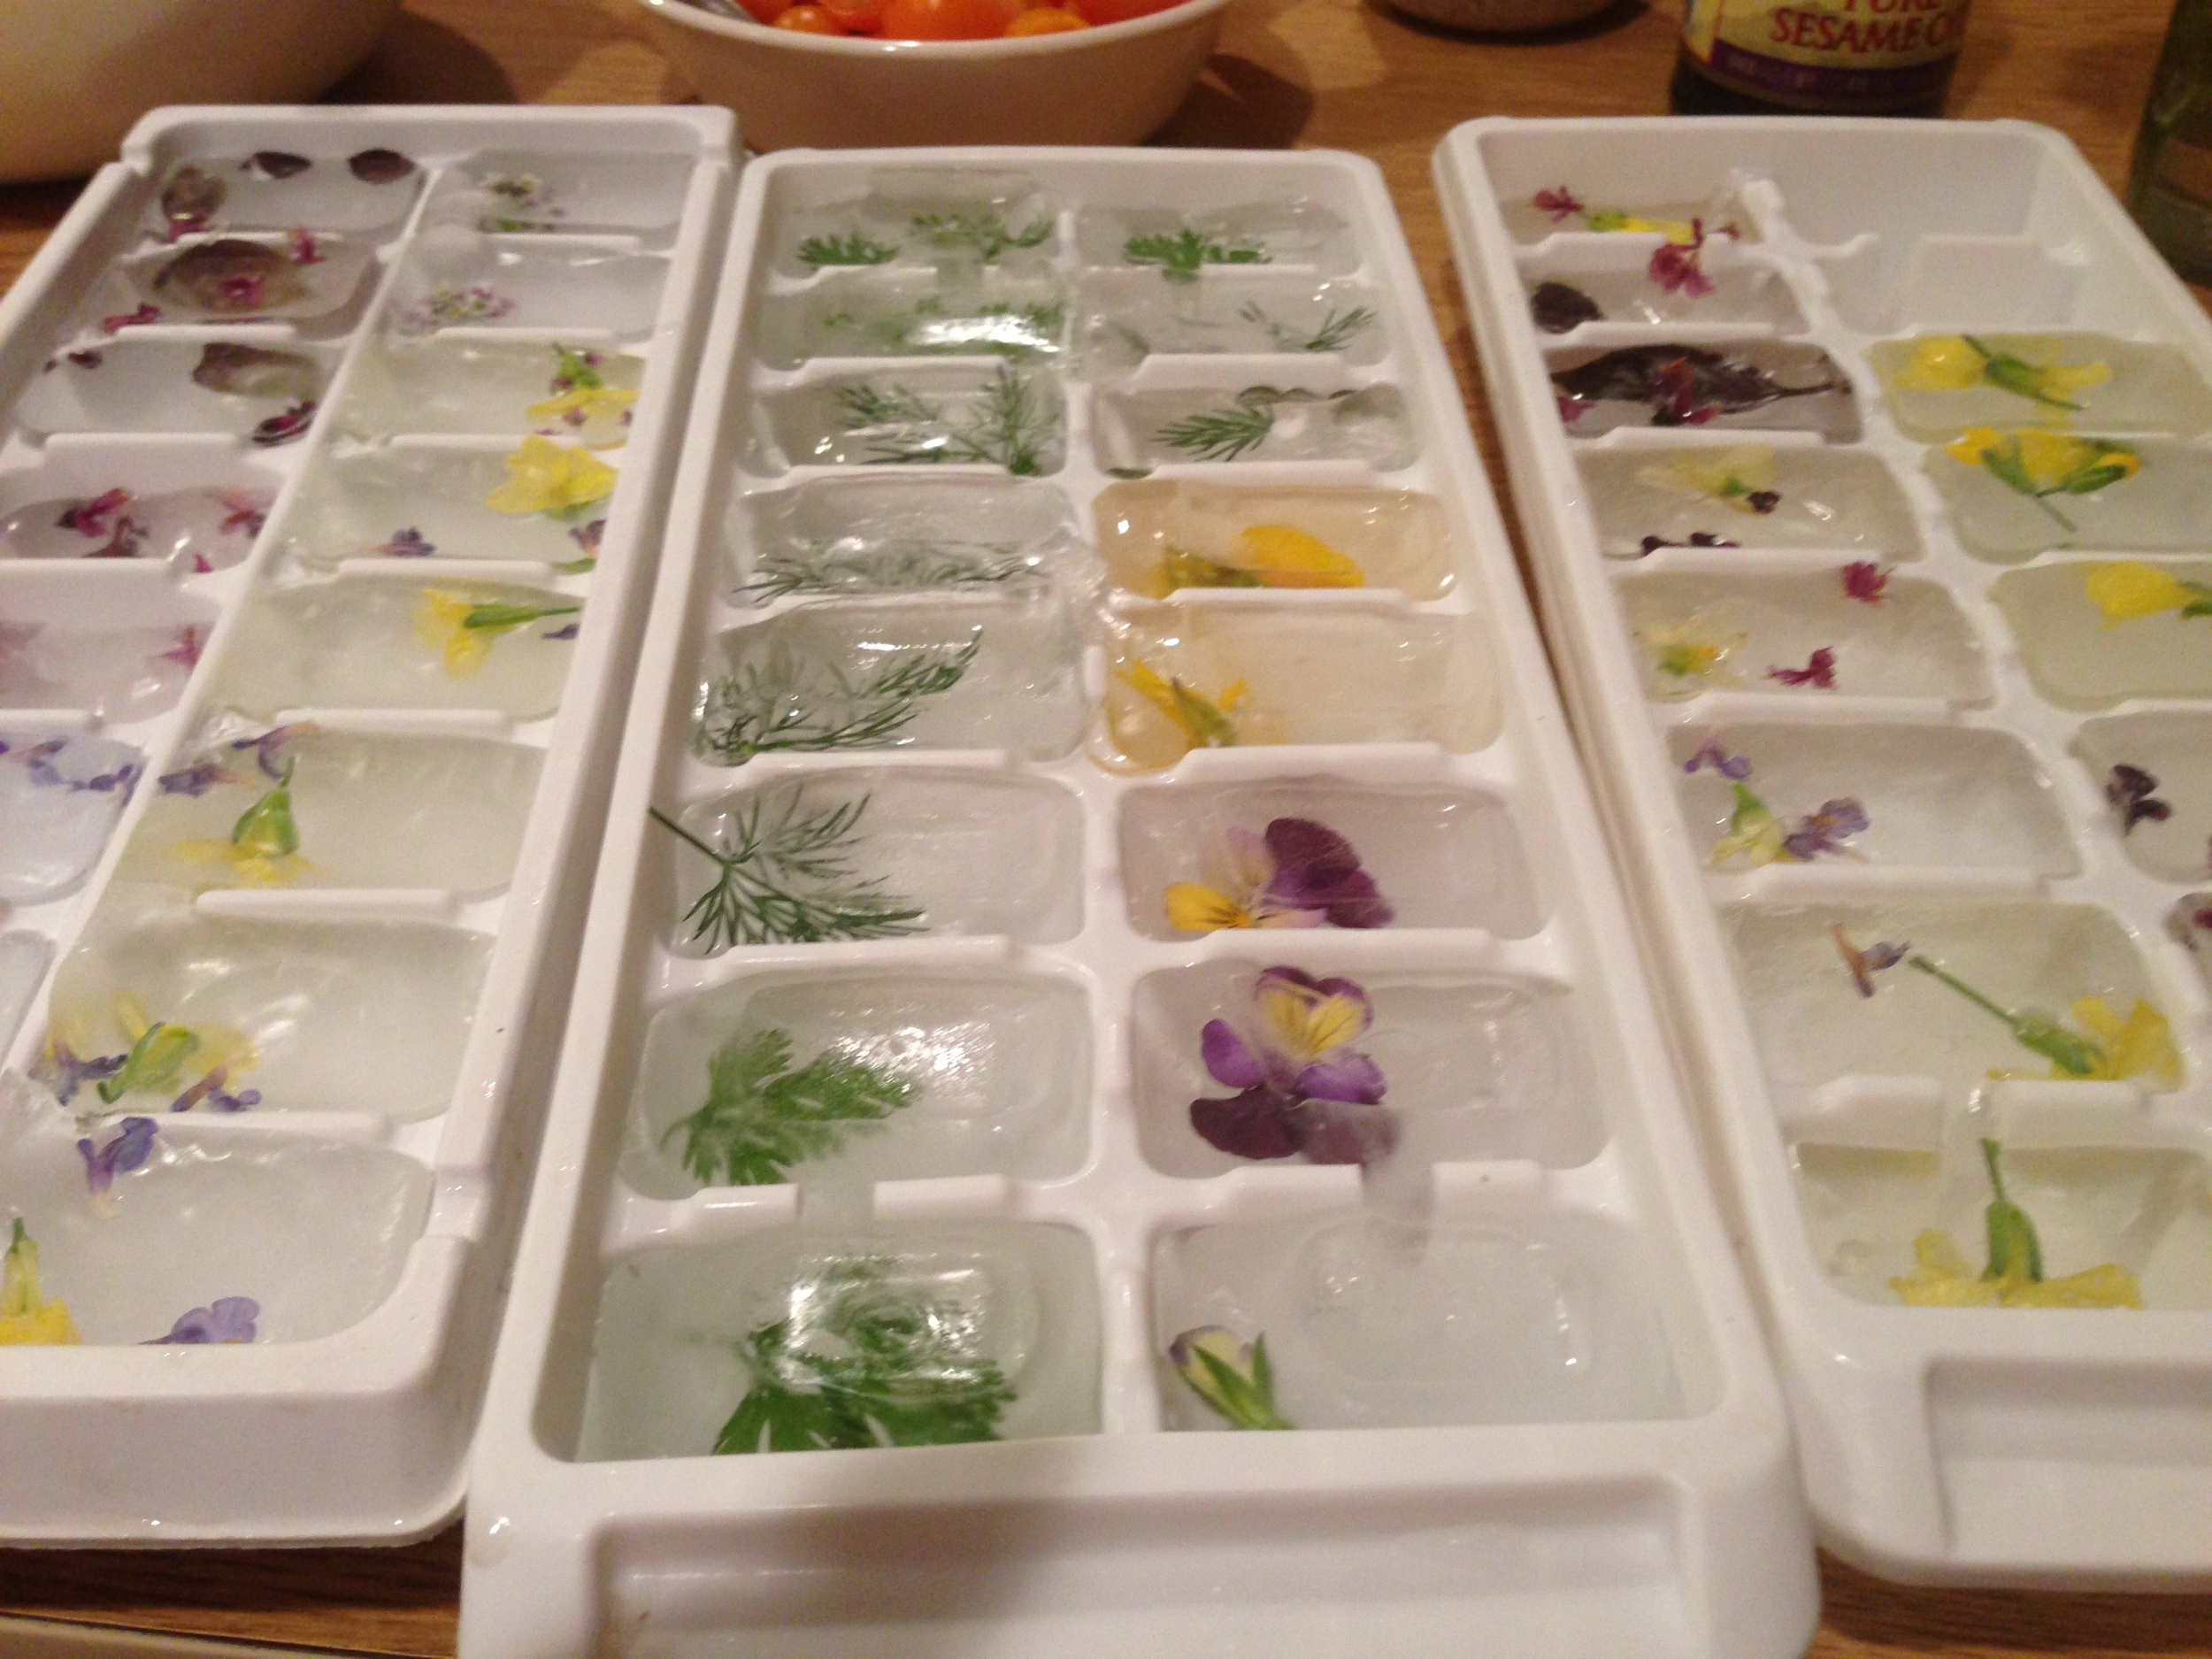 Herb-infused Ice Cubes for flavored water